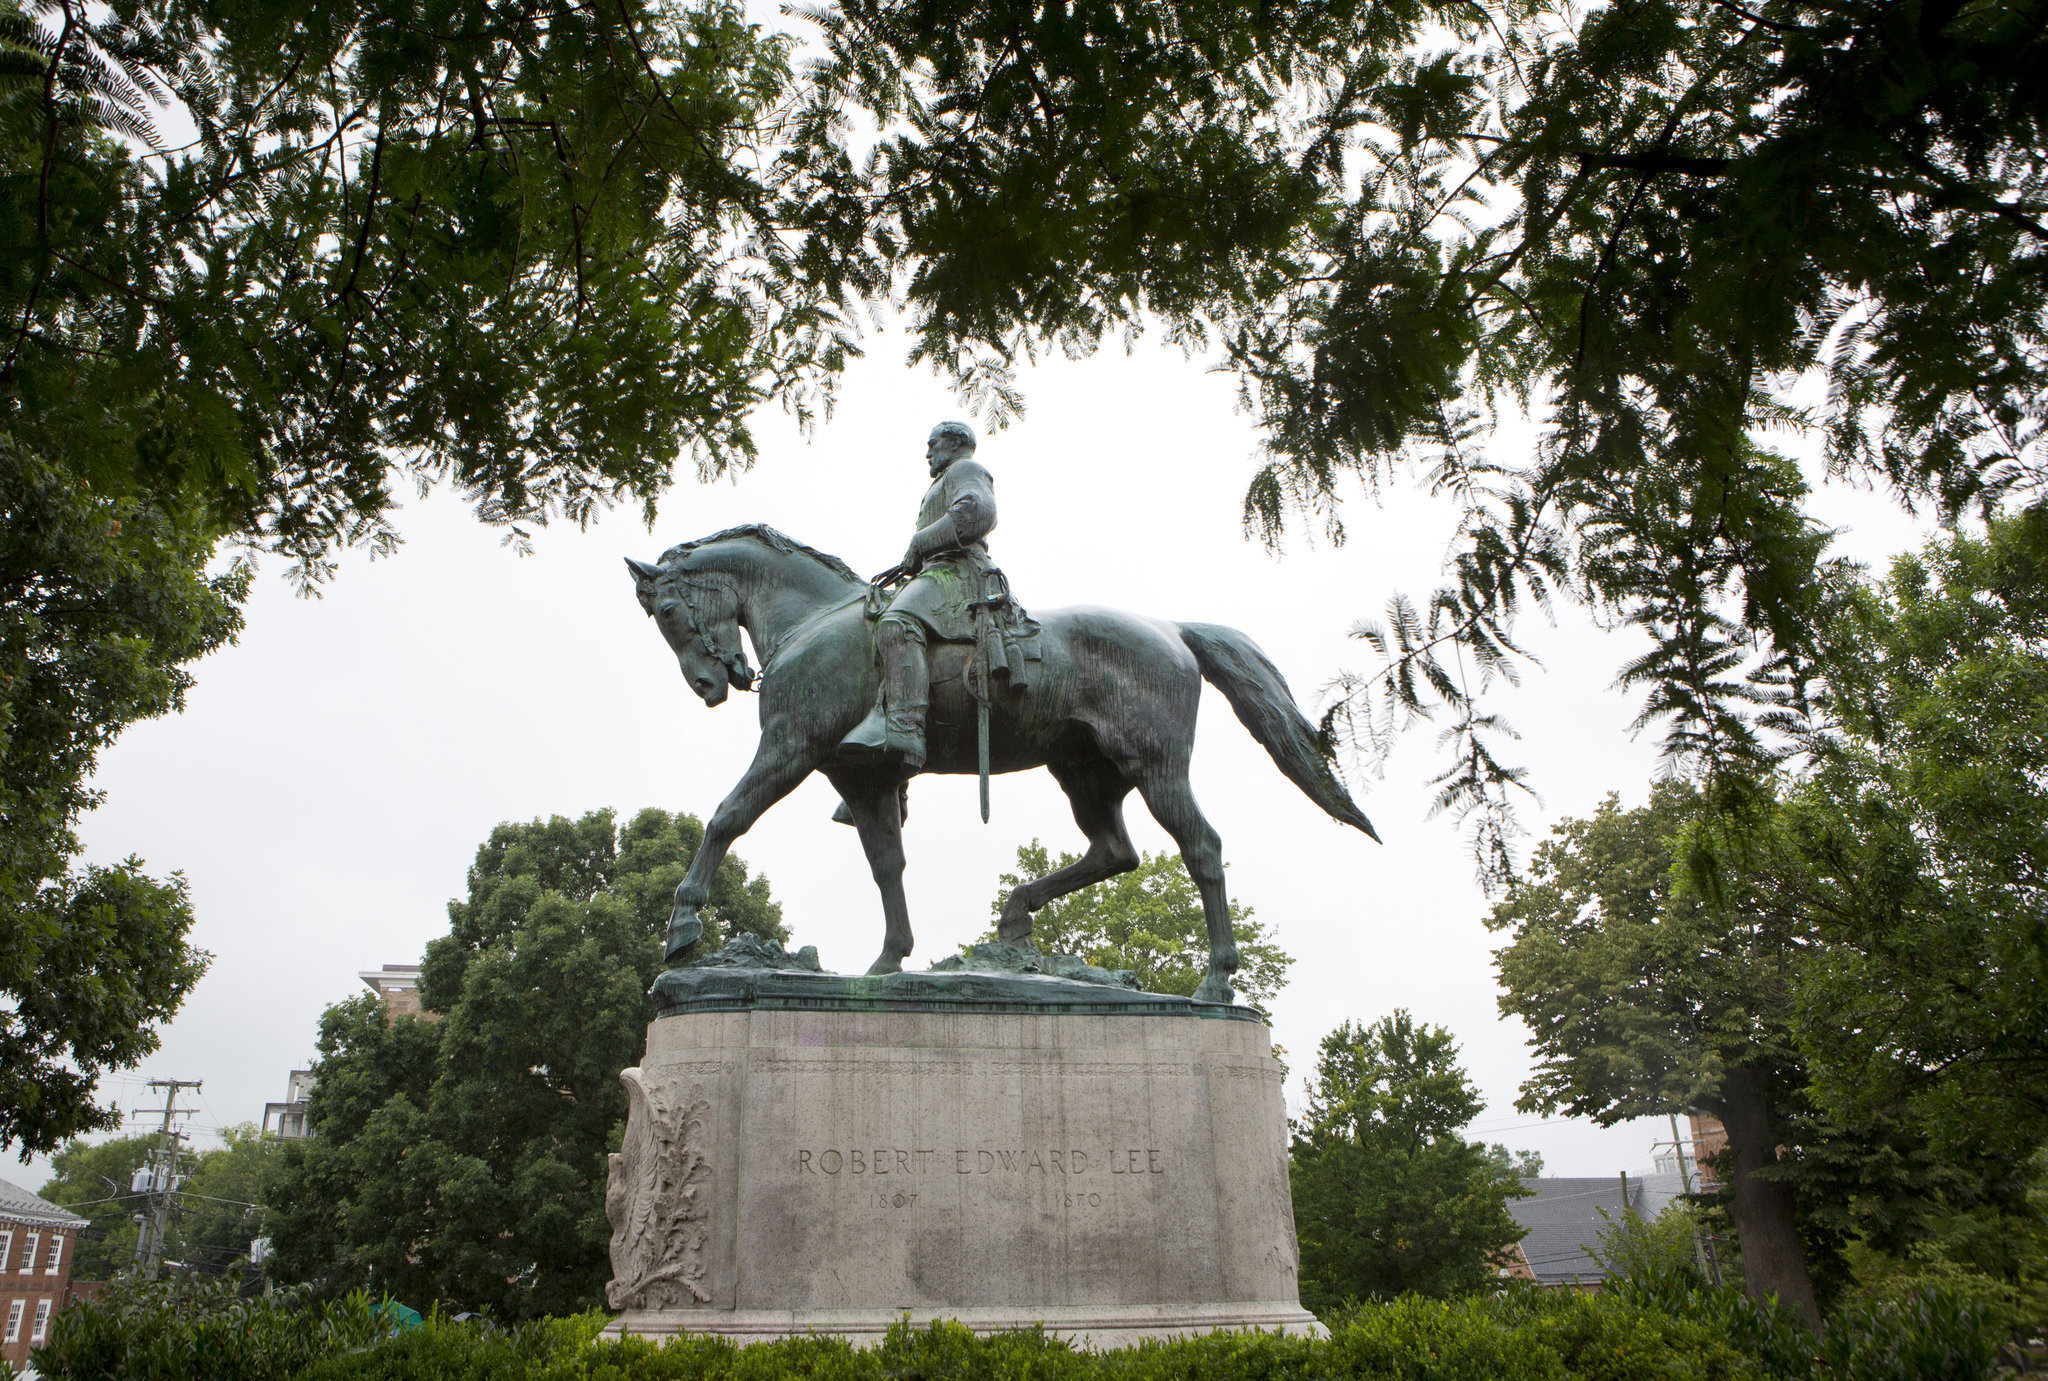 A statue of Confederate general Robert E. Lee sits in Emancipation Park in Charlottesville, Va. (AP Photo | Julia Rendlema)